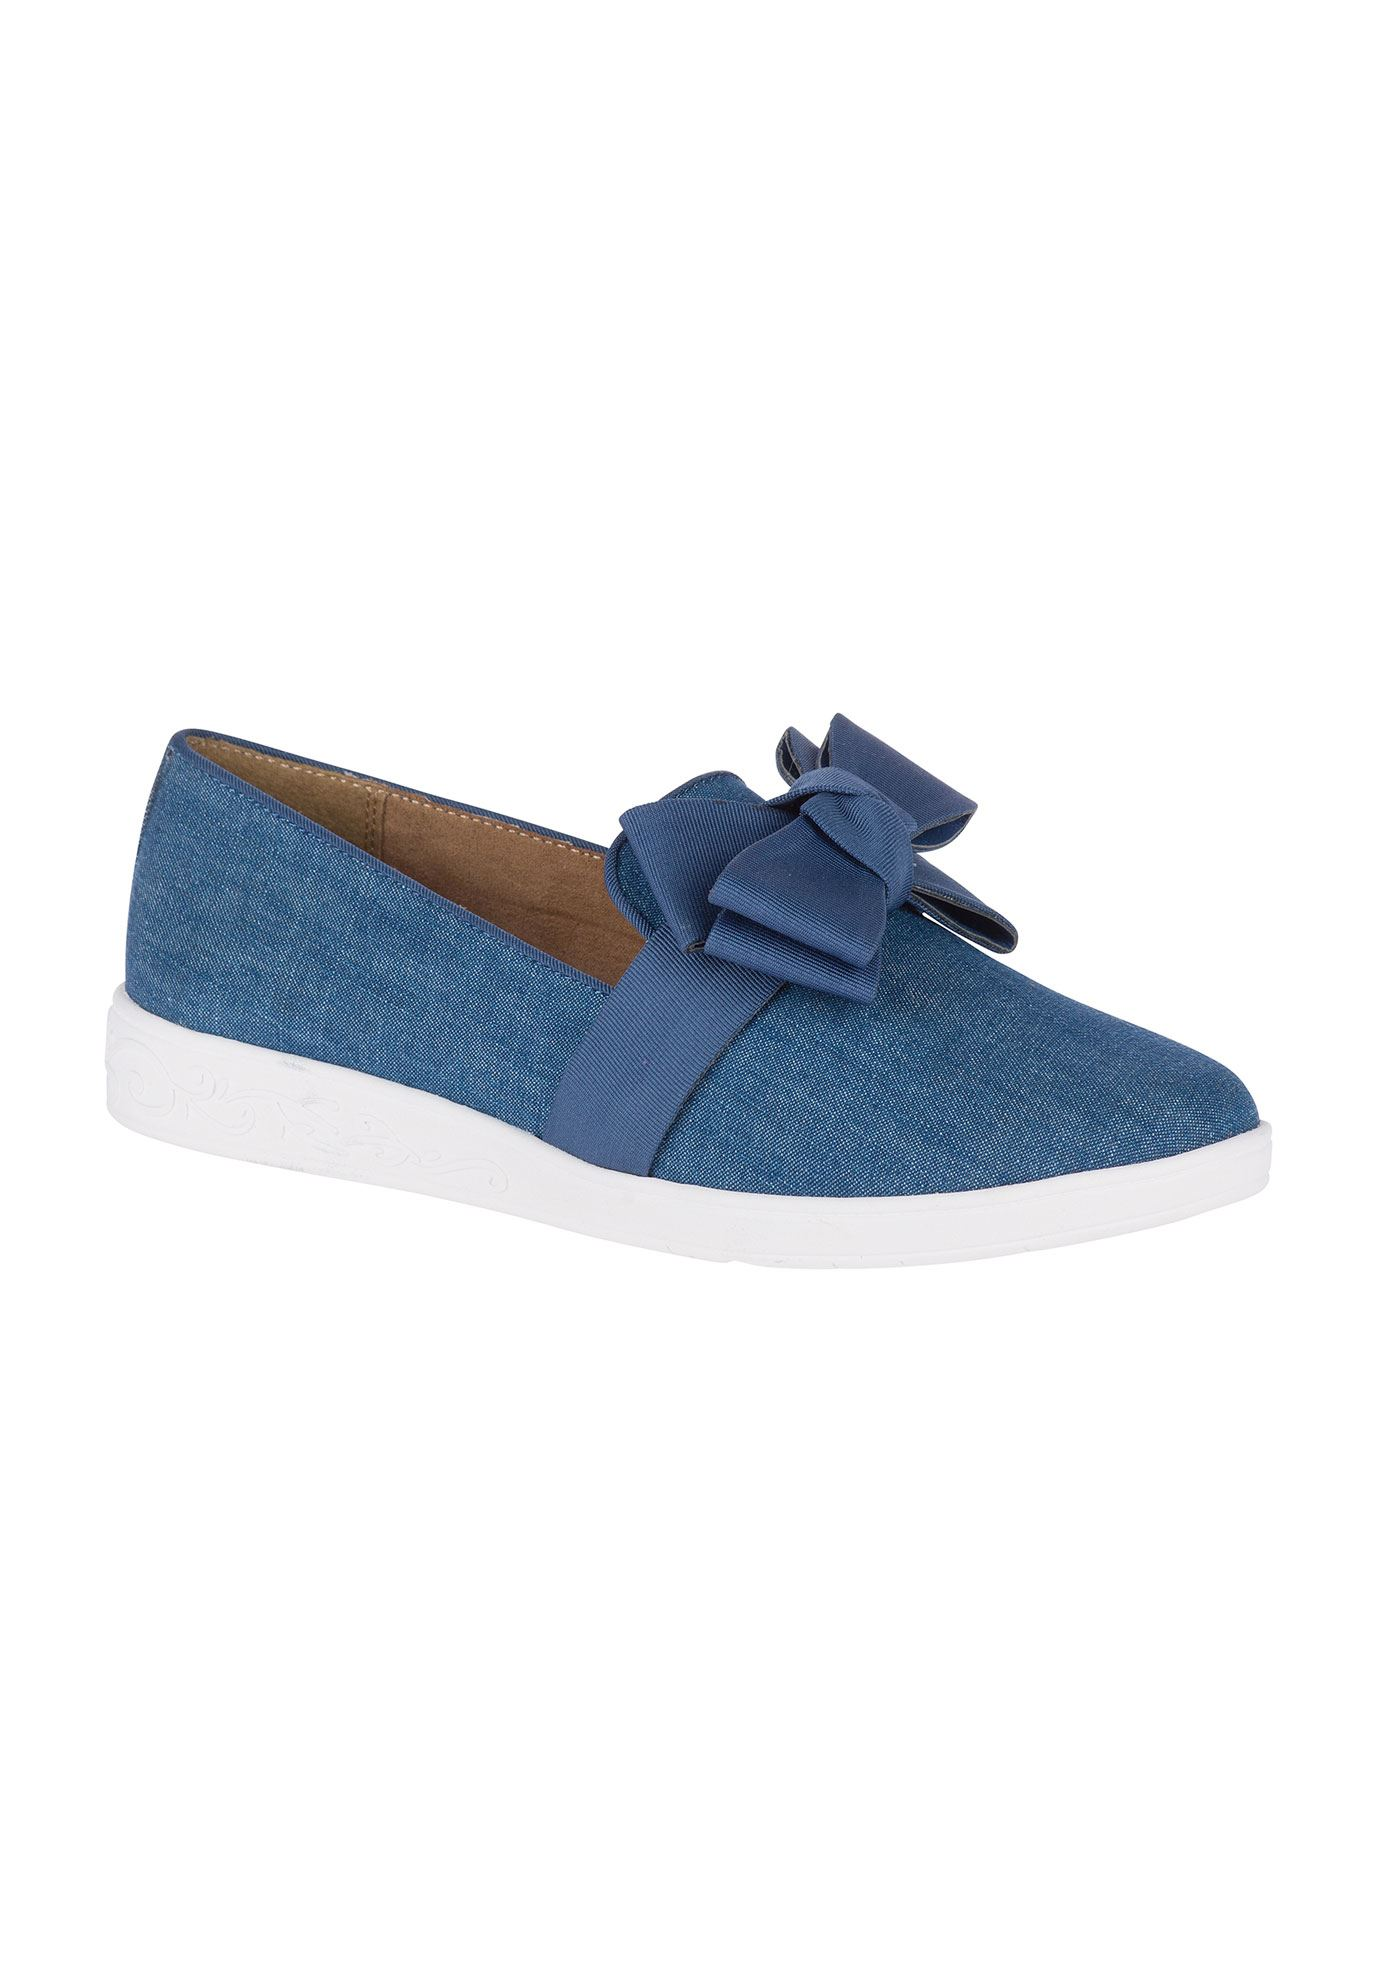 Padme Sneakers by Soft Style®,